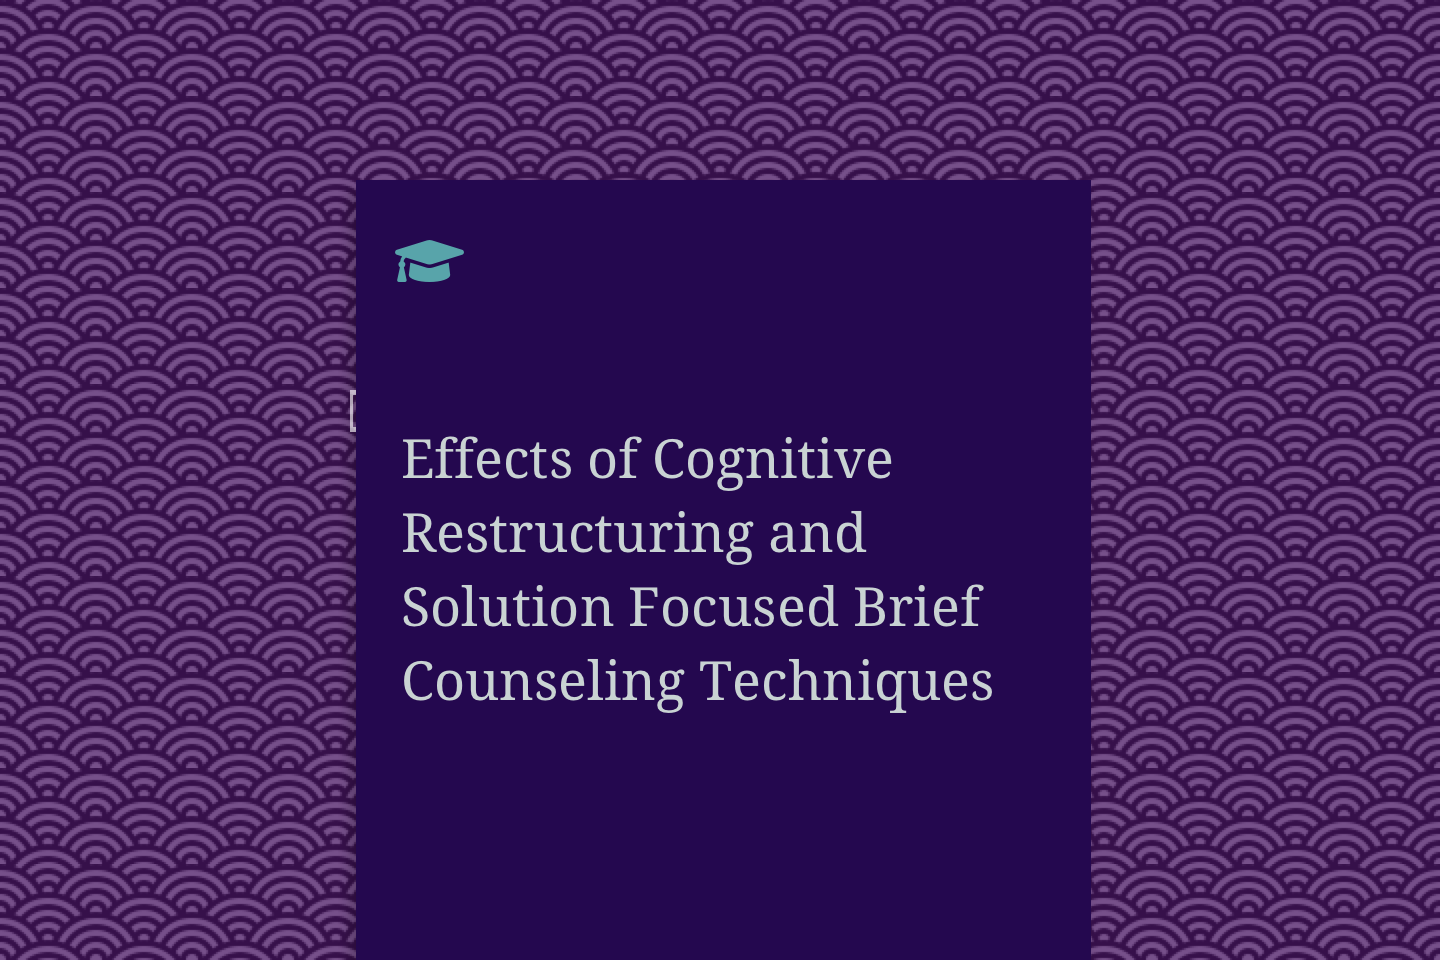 Effects of Cognitive Restructuring and Solution Focused Brief Counselling Techniques